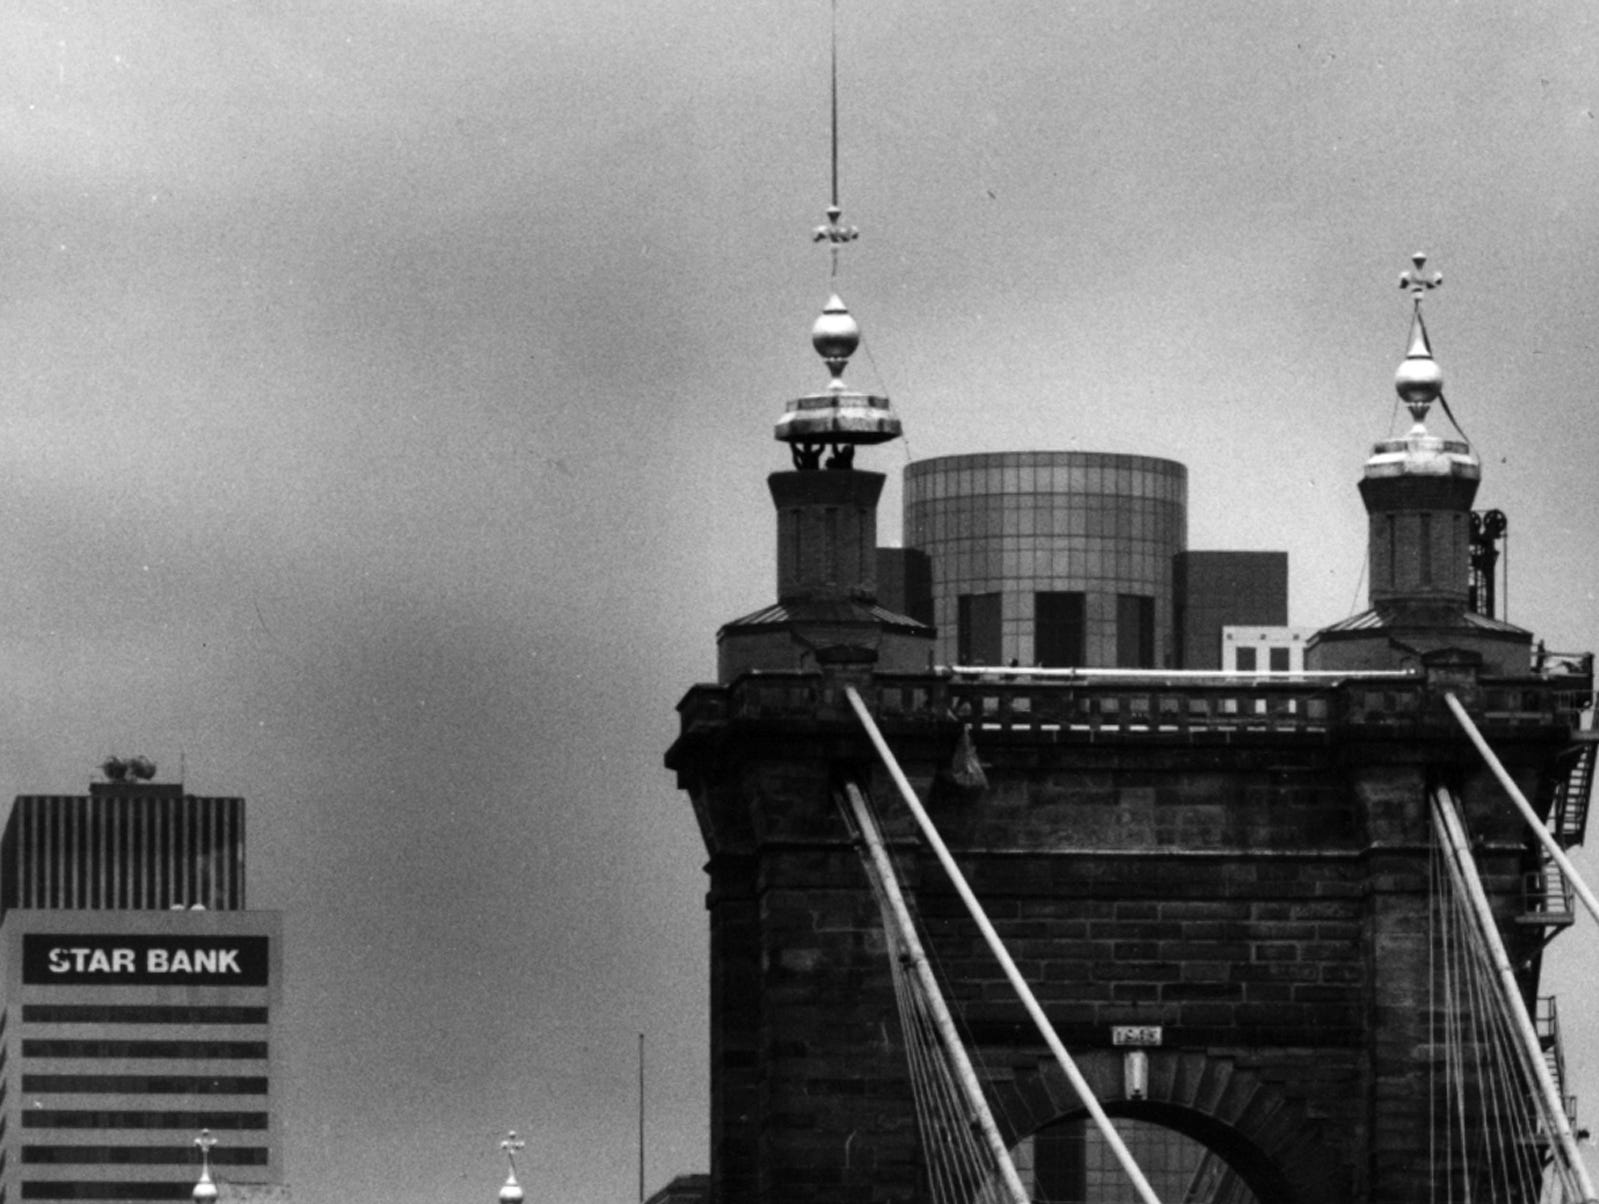 MARCH 7, 1992: The last of four turrets is lowered onto a tower atop the John A. Roebling Suspension Bridge Saturday morning. Photo shot looking north from the Kentucky side of the Ohio River. The Enquirer/Gary Landers scanned May 16, 2013